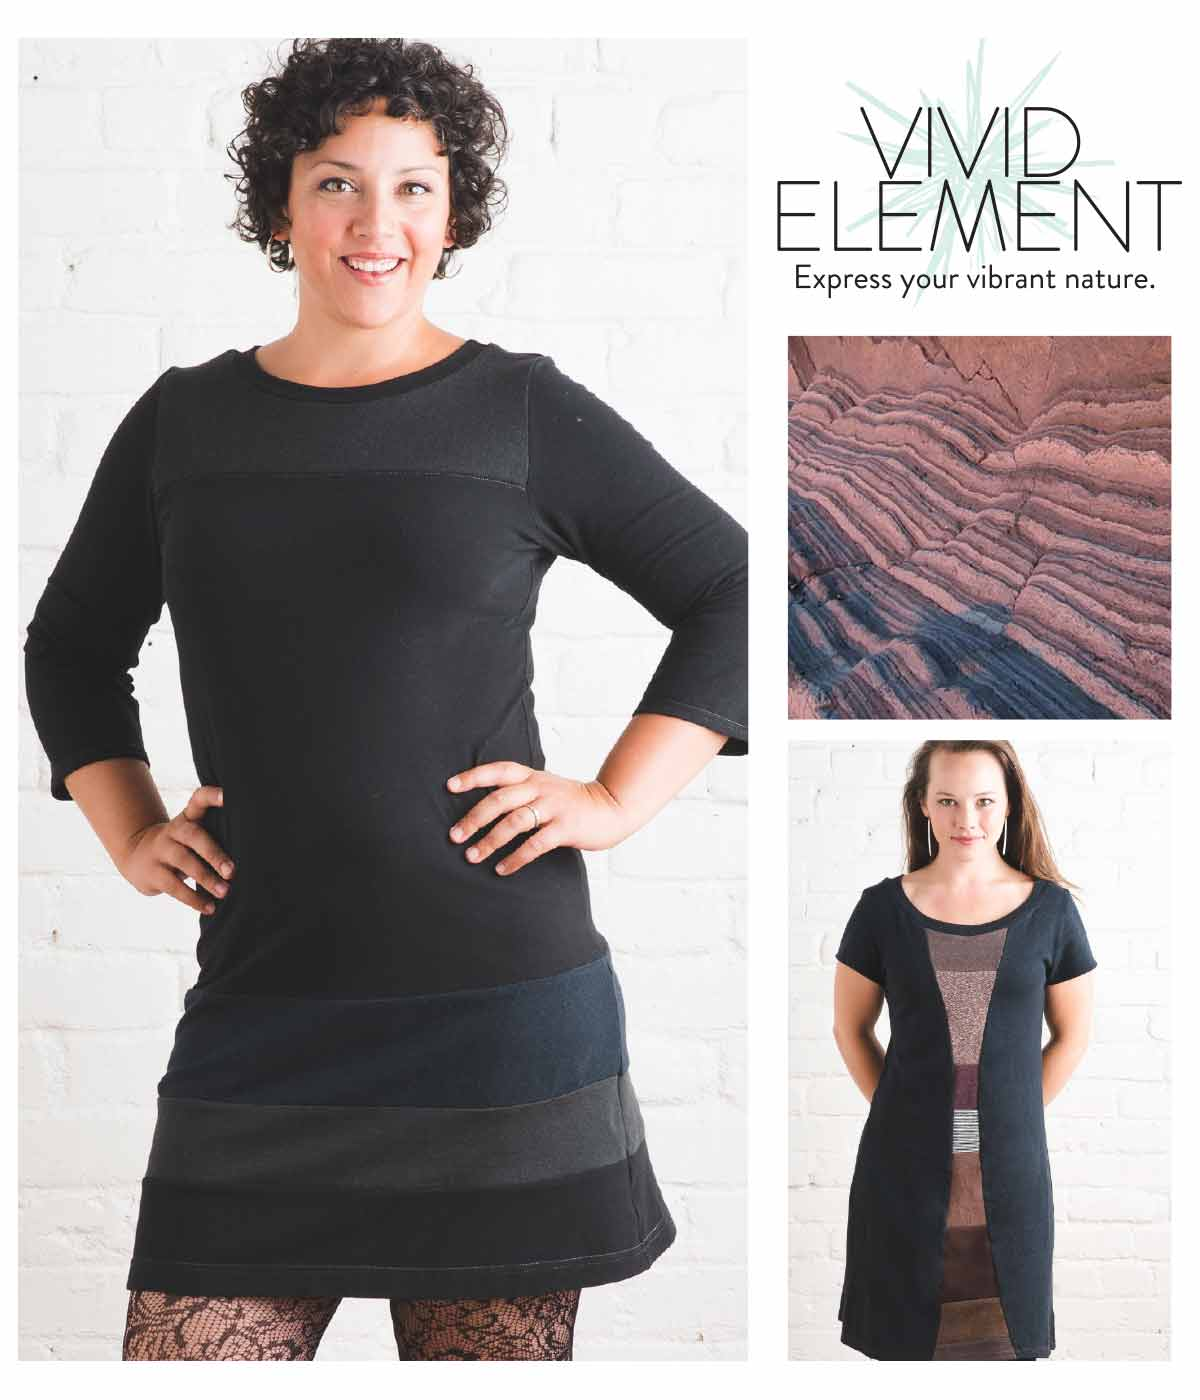 Find Vivid Element's Stargazer Dress in Outerspace Blacks and Time Travel Dress at the trunk show December 9 & 10, 2016.